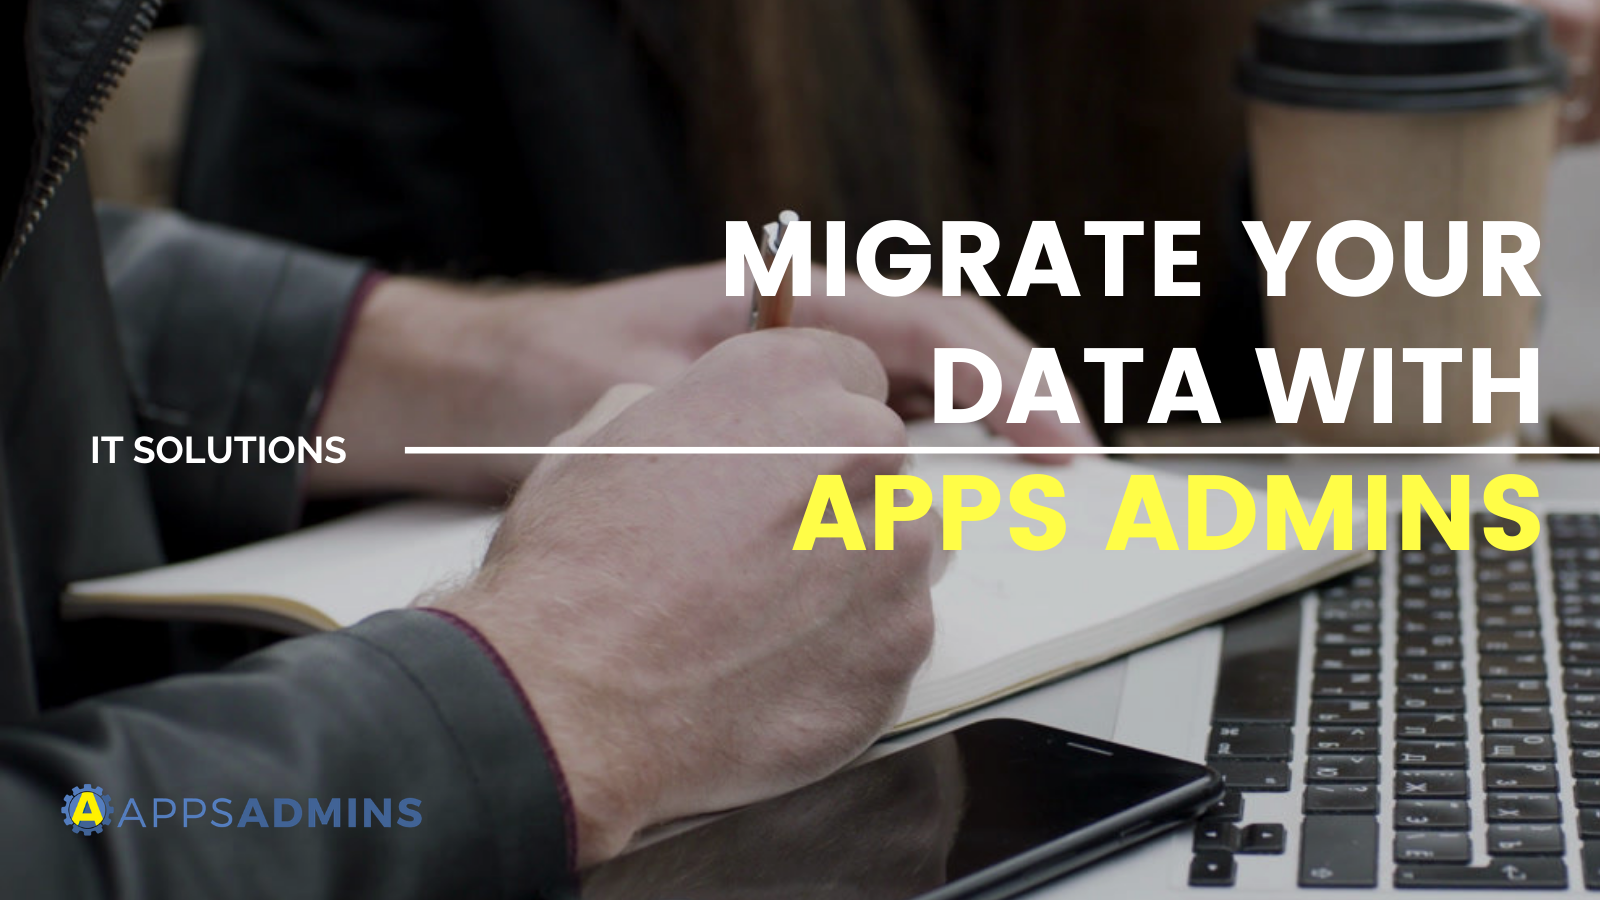 Migrate_Data_With_Apps_Admins